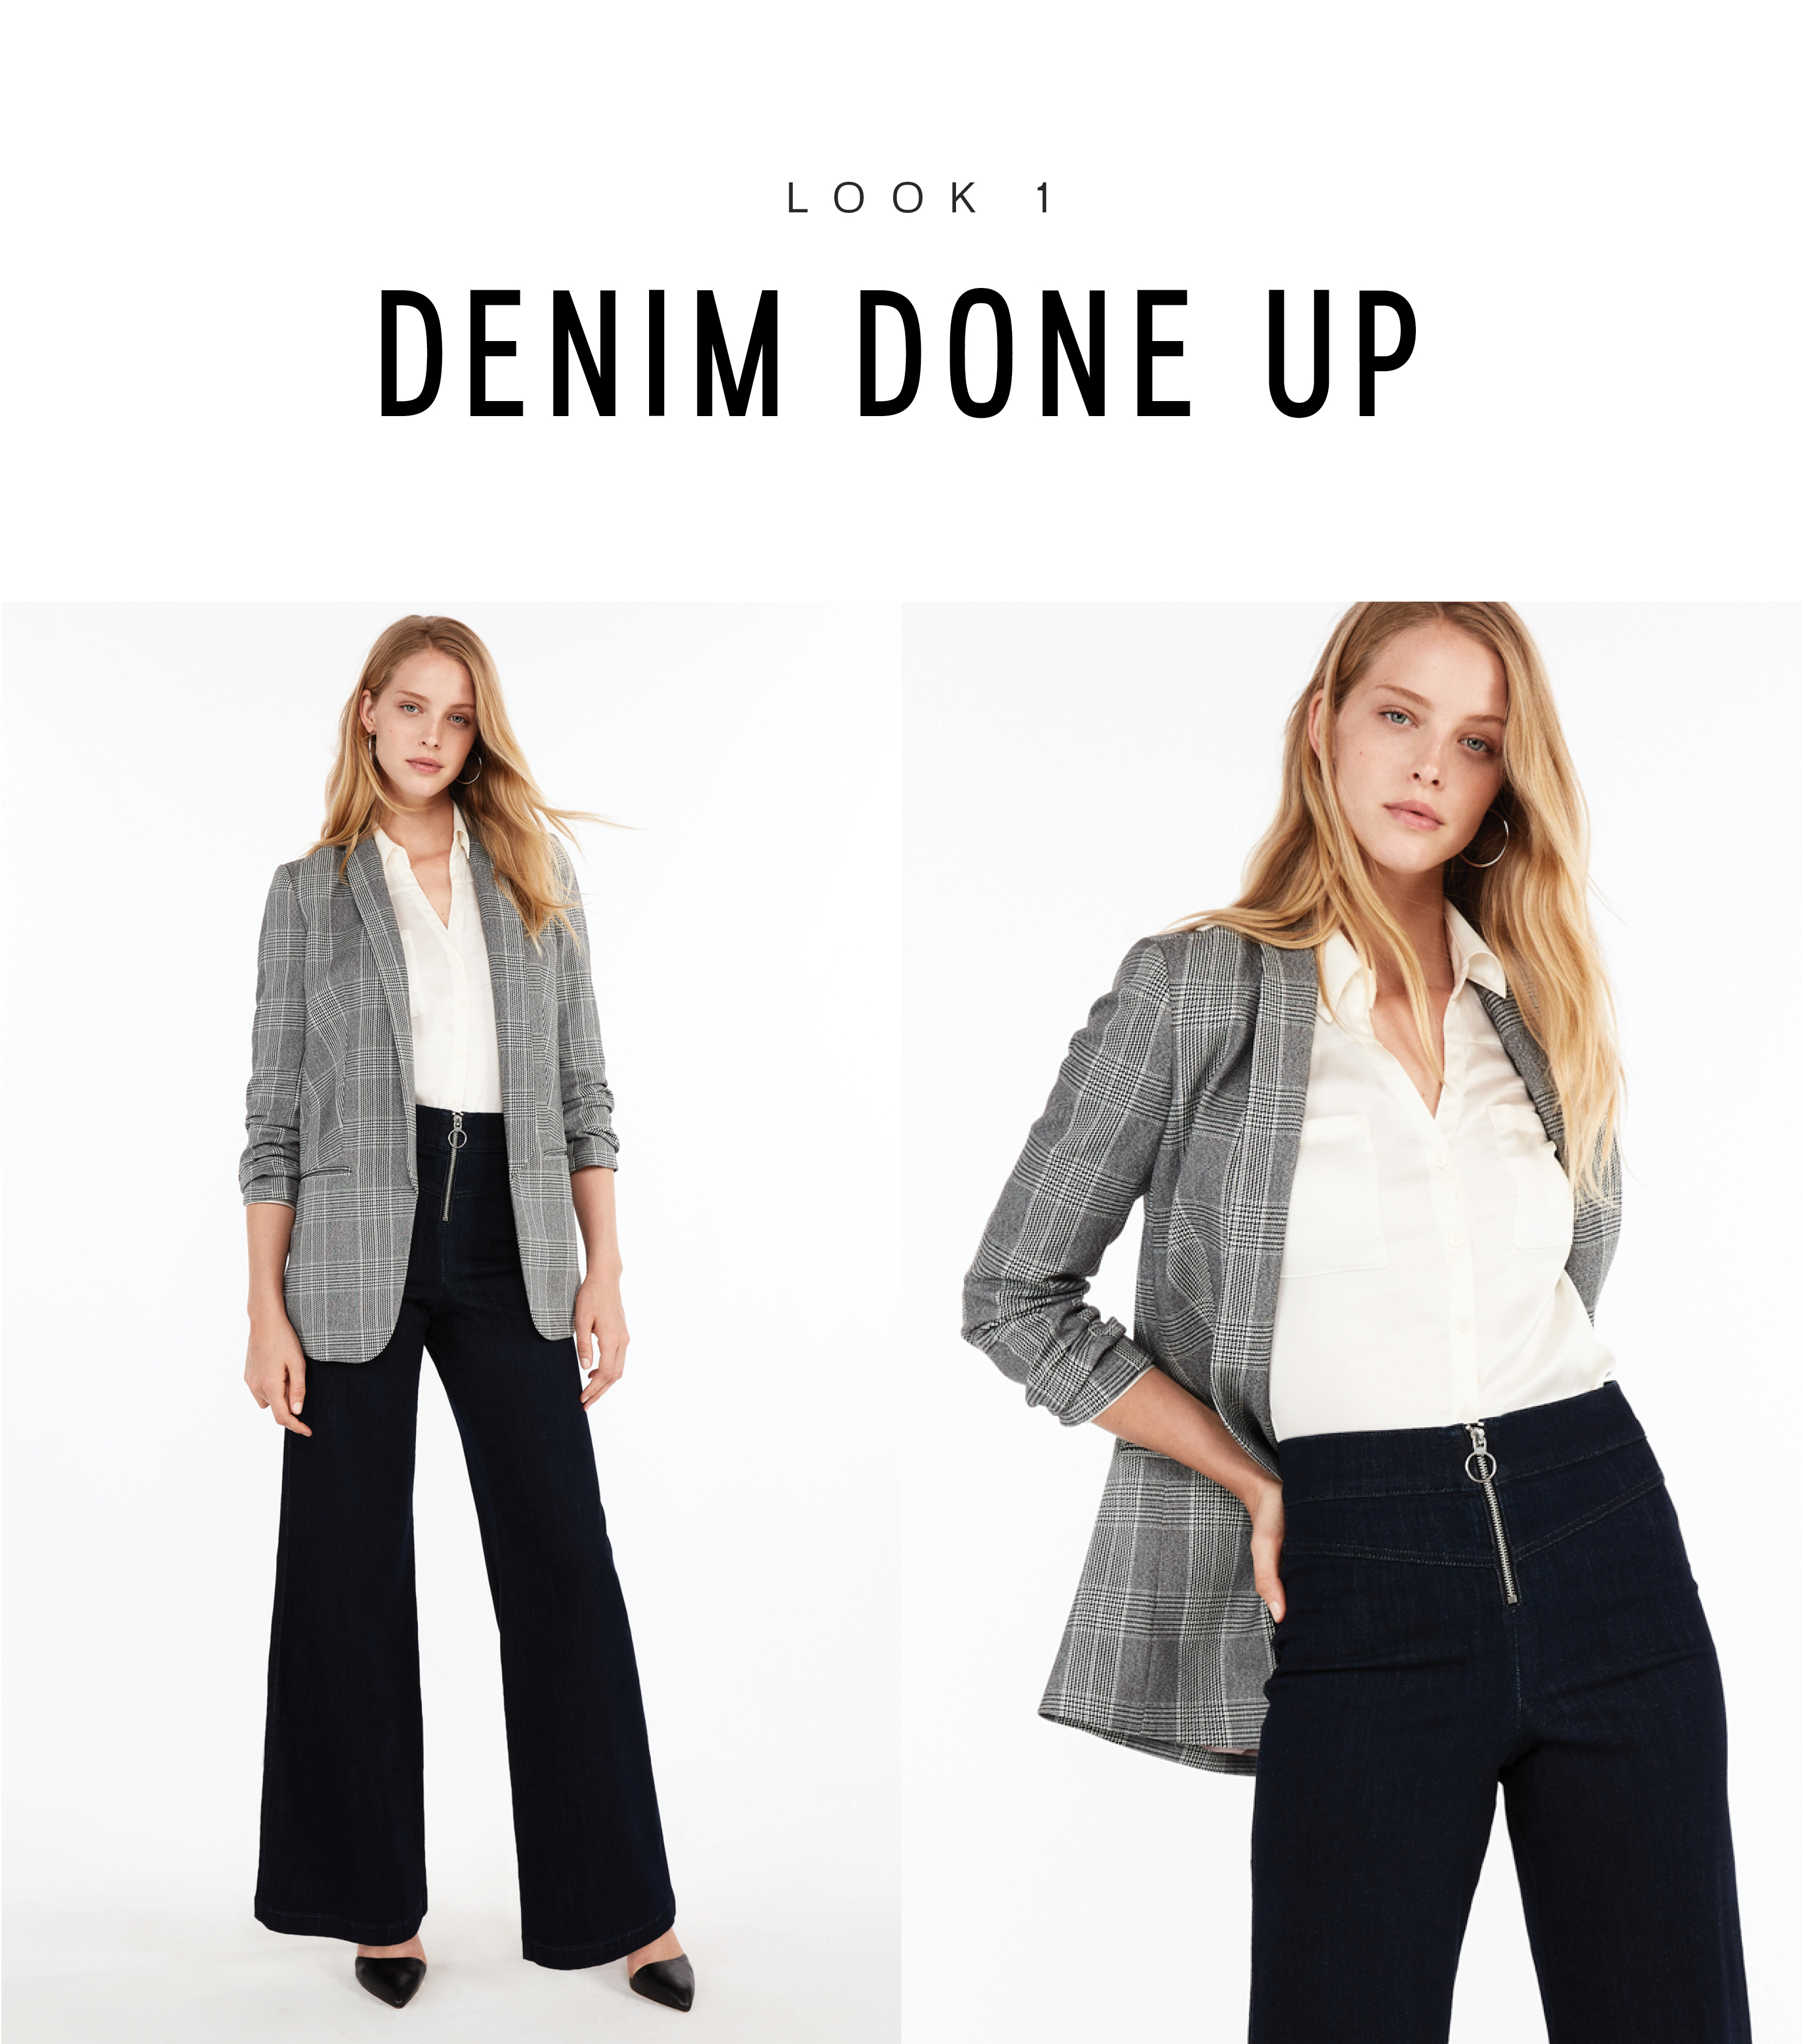 56fe3112ed Give your favorite flares a smarter look by tucking in an ivory Portofino  shirt with an oversize plaid blazer over top. Whether worn to work or for a  meal ...